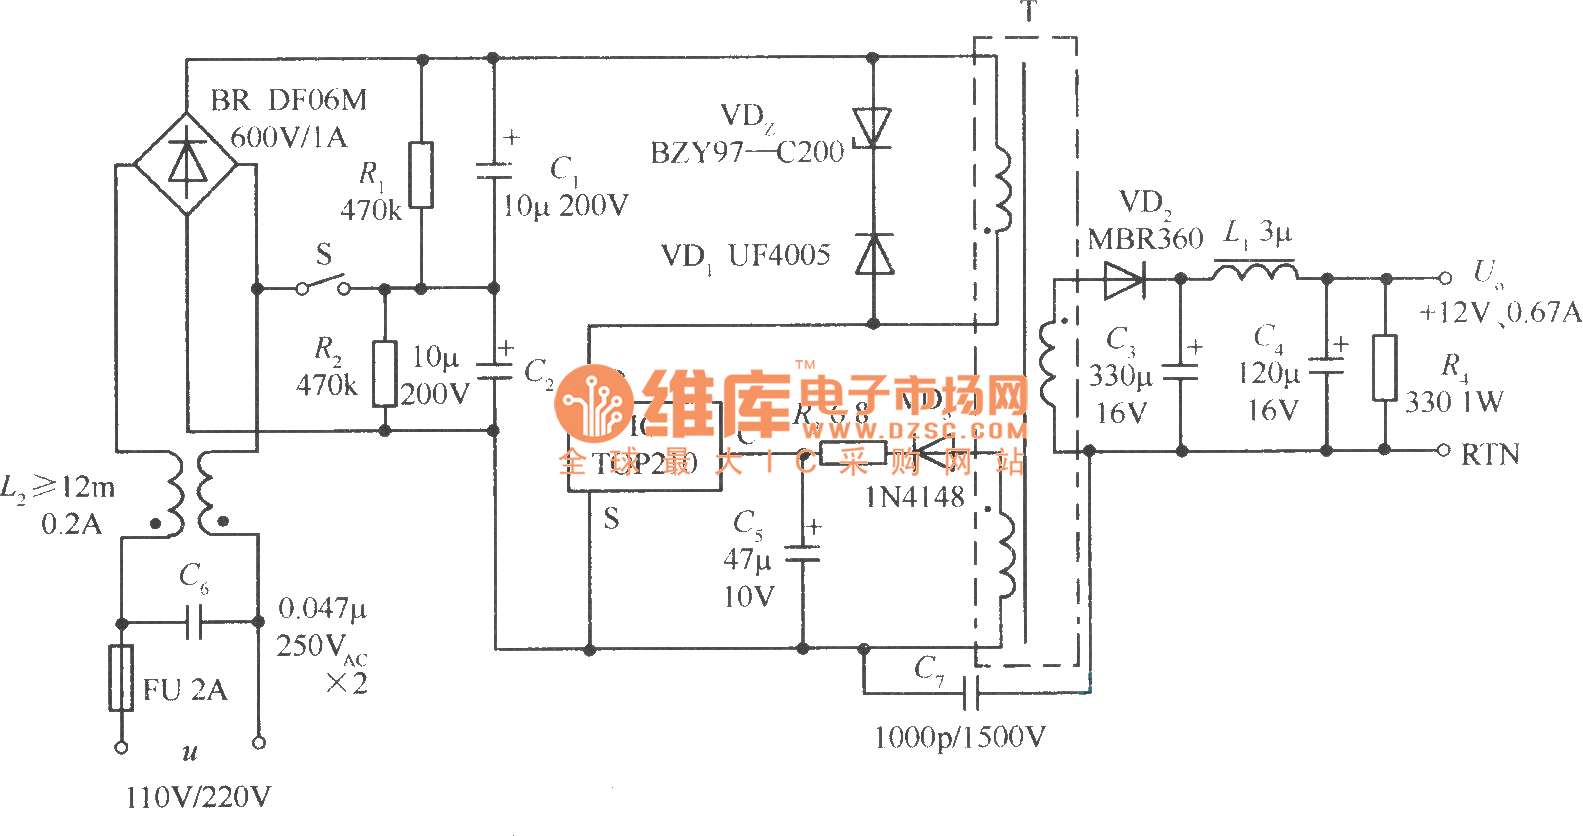 110v Power Supply Diagram Trusted Wiring Diagrams Of Lm7805 Powersupplycircuit Circuit Seekiccom Switching Regulated Using Doubling Voltage 220v Indicator Light